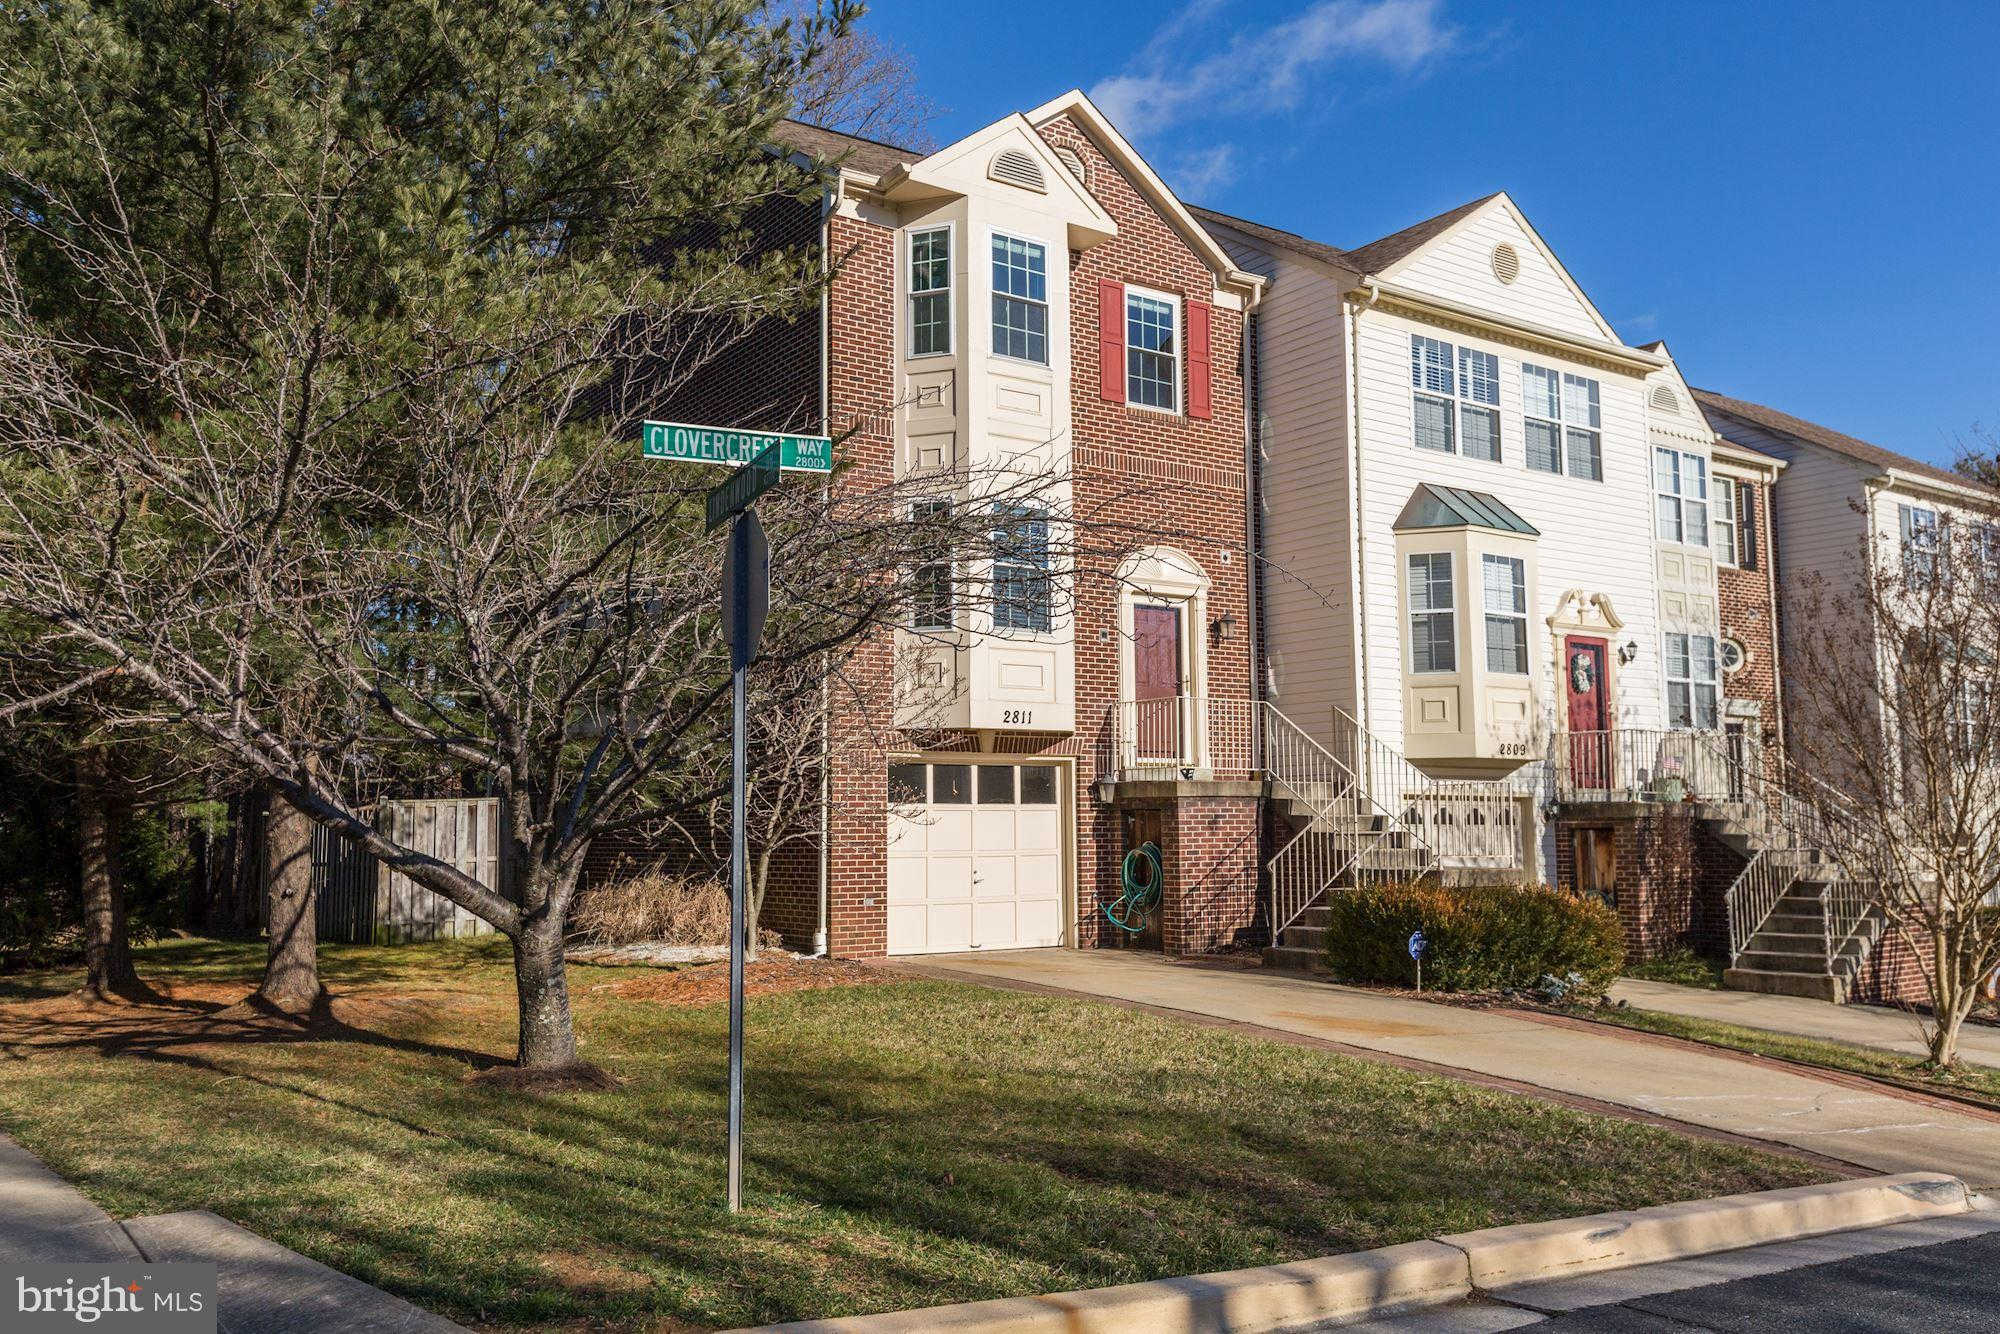 2811 CLOVERCREST WAY OLNEY, MD 20832 is now new to the market!